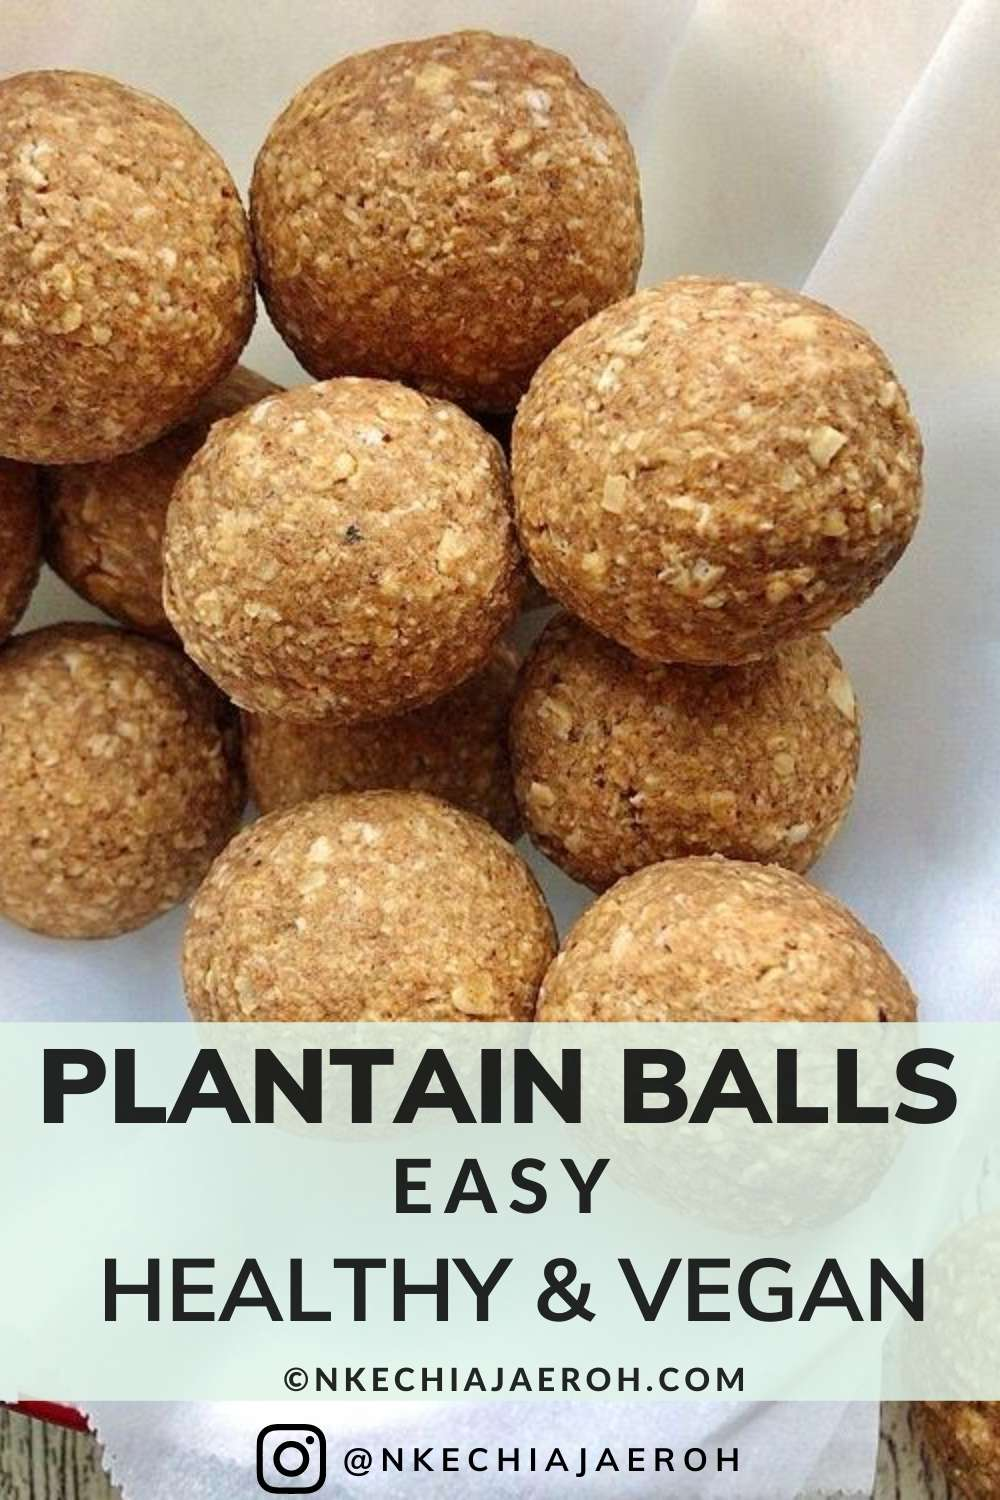 Sweet yellow ripe plantain energy balls. Vegan, gluten-free, paleo-friendly, low carb, sugar-free, sweet, savory, and insanely delicious. These healthy protein bites require only three main ingredients – ripe (sweet yellow) plantain, oats, and nut butter. Healthy vegan snacks excellent pre and post work out snacks. On the go and kid-friendly snacks. Healthy bites for appetizers, side dishes, and dessert. #plantainballs #howtomakeplantainballs #oatmeal #healthyrecipes #energybites #energyballs